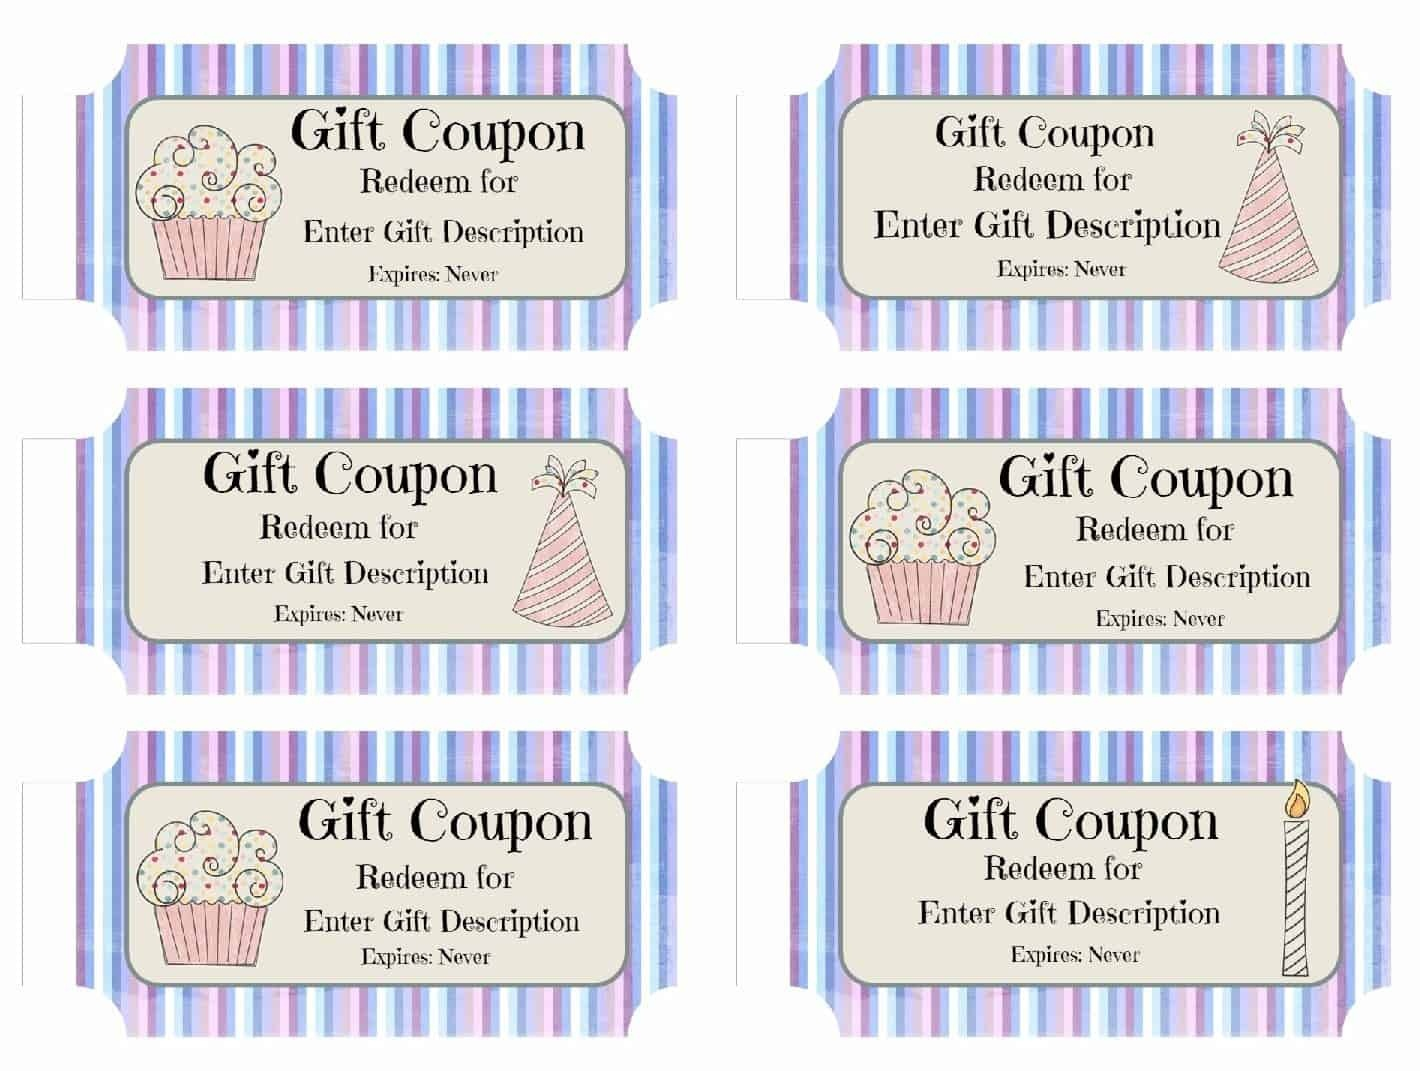 Free Custom Birthday Coupons - Customize Online & Print At Home - Free Sample Coupons Printable